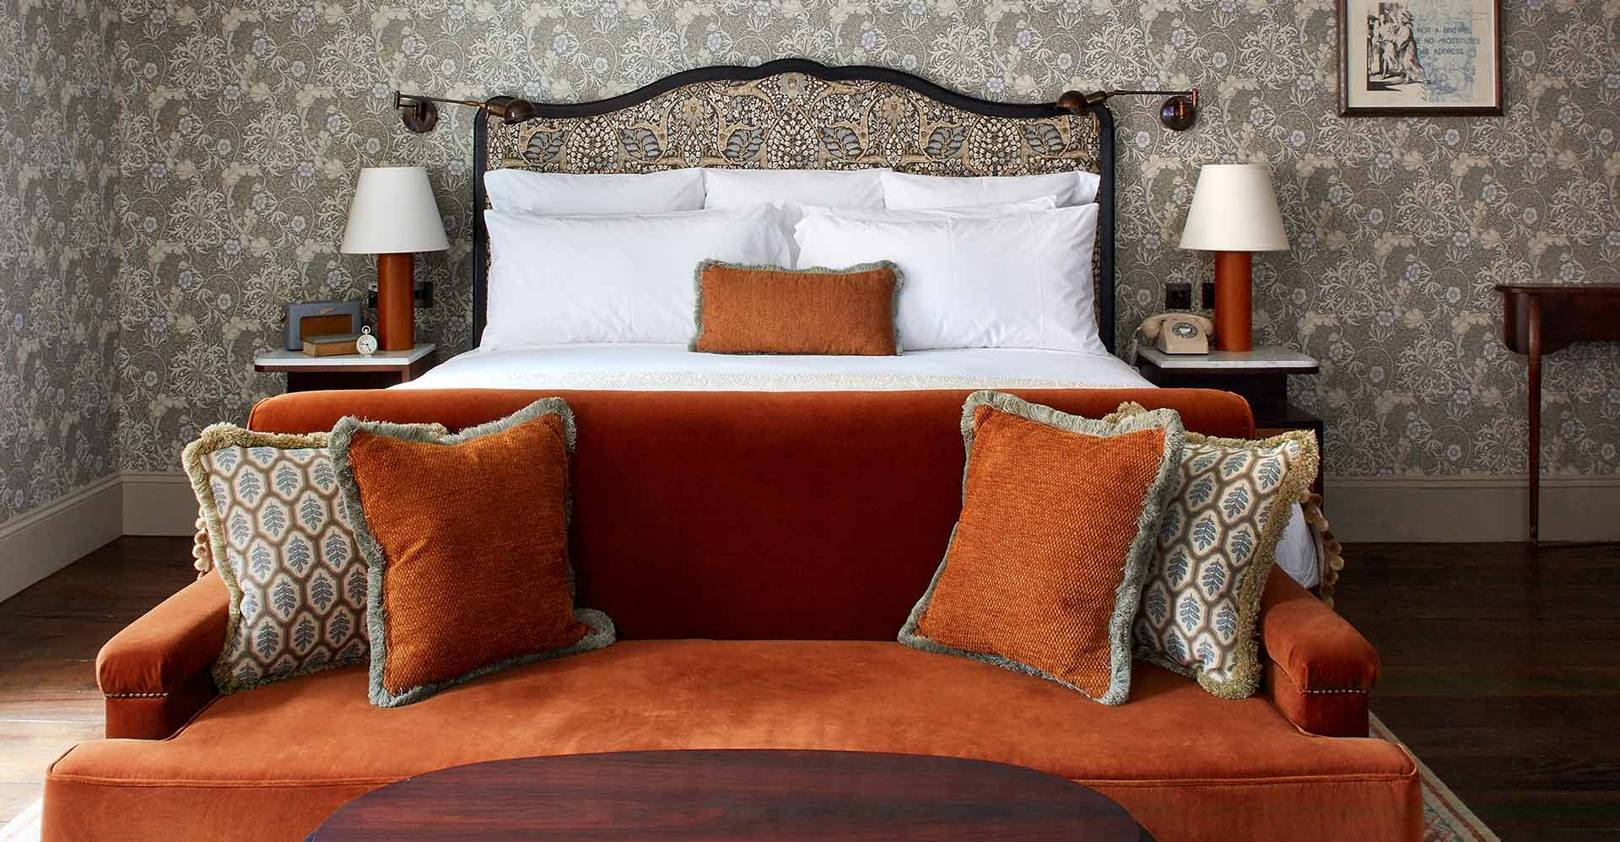 Win a night's stay at Kettner's in London